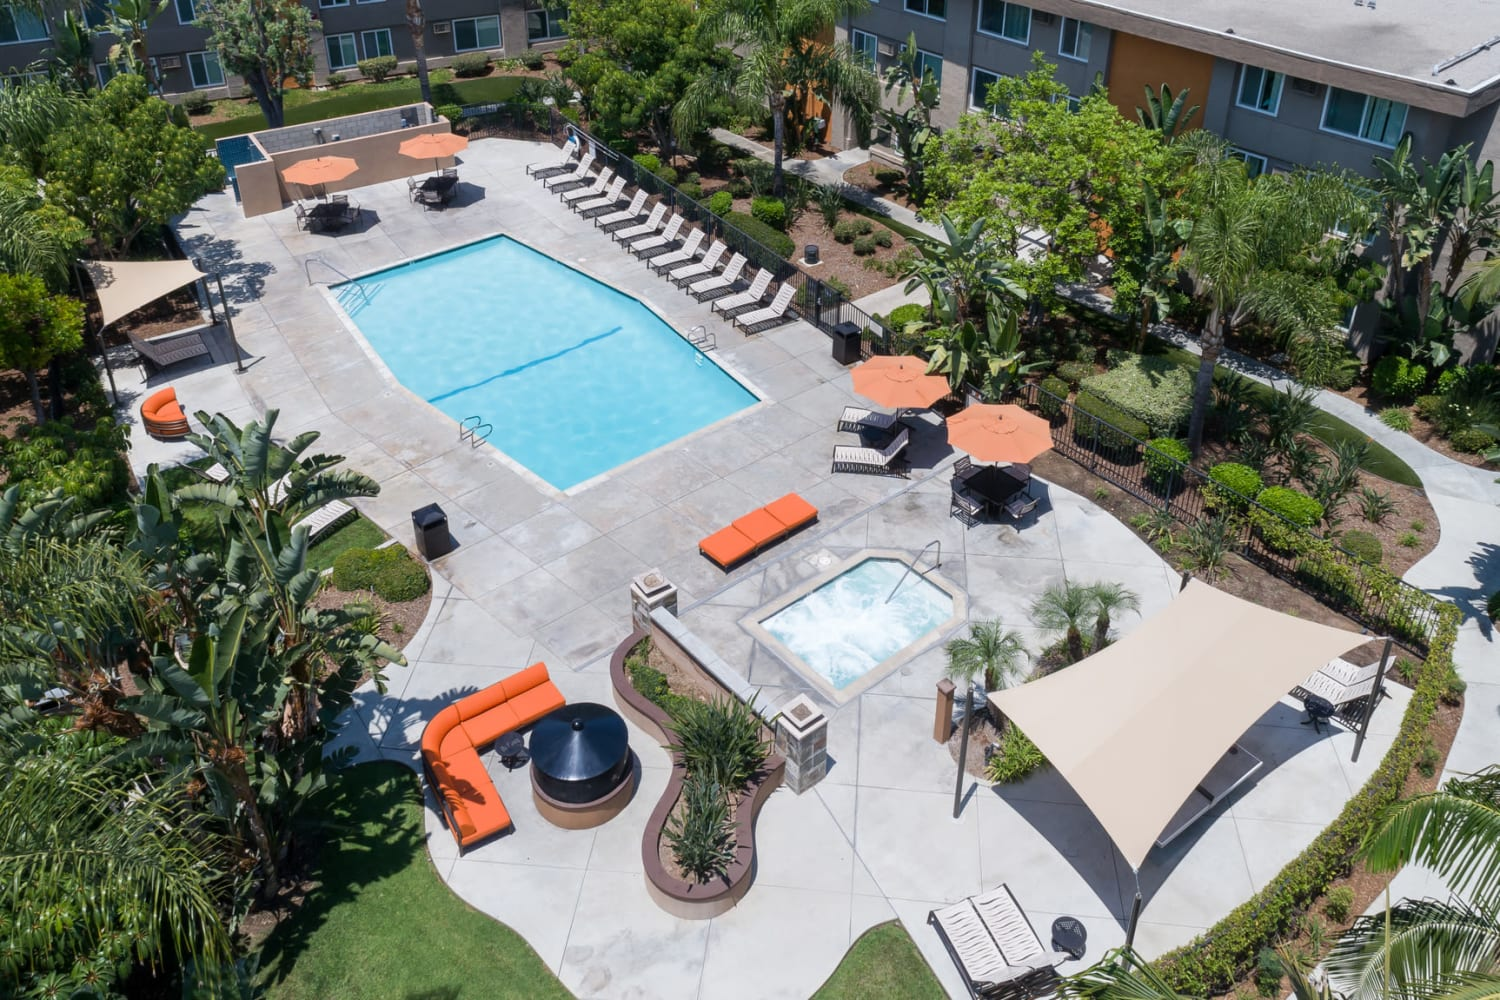 Aerial view of swimming pool at UCA Apartment Homes in Fullerton, California